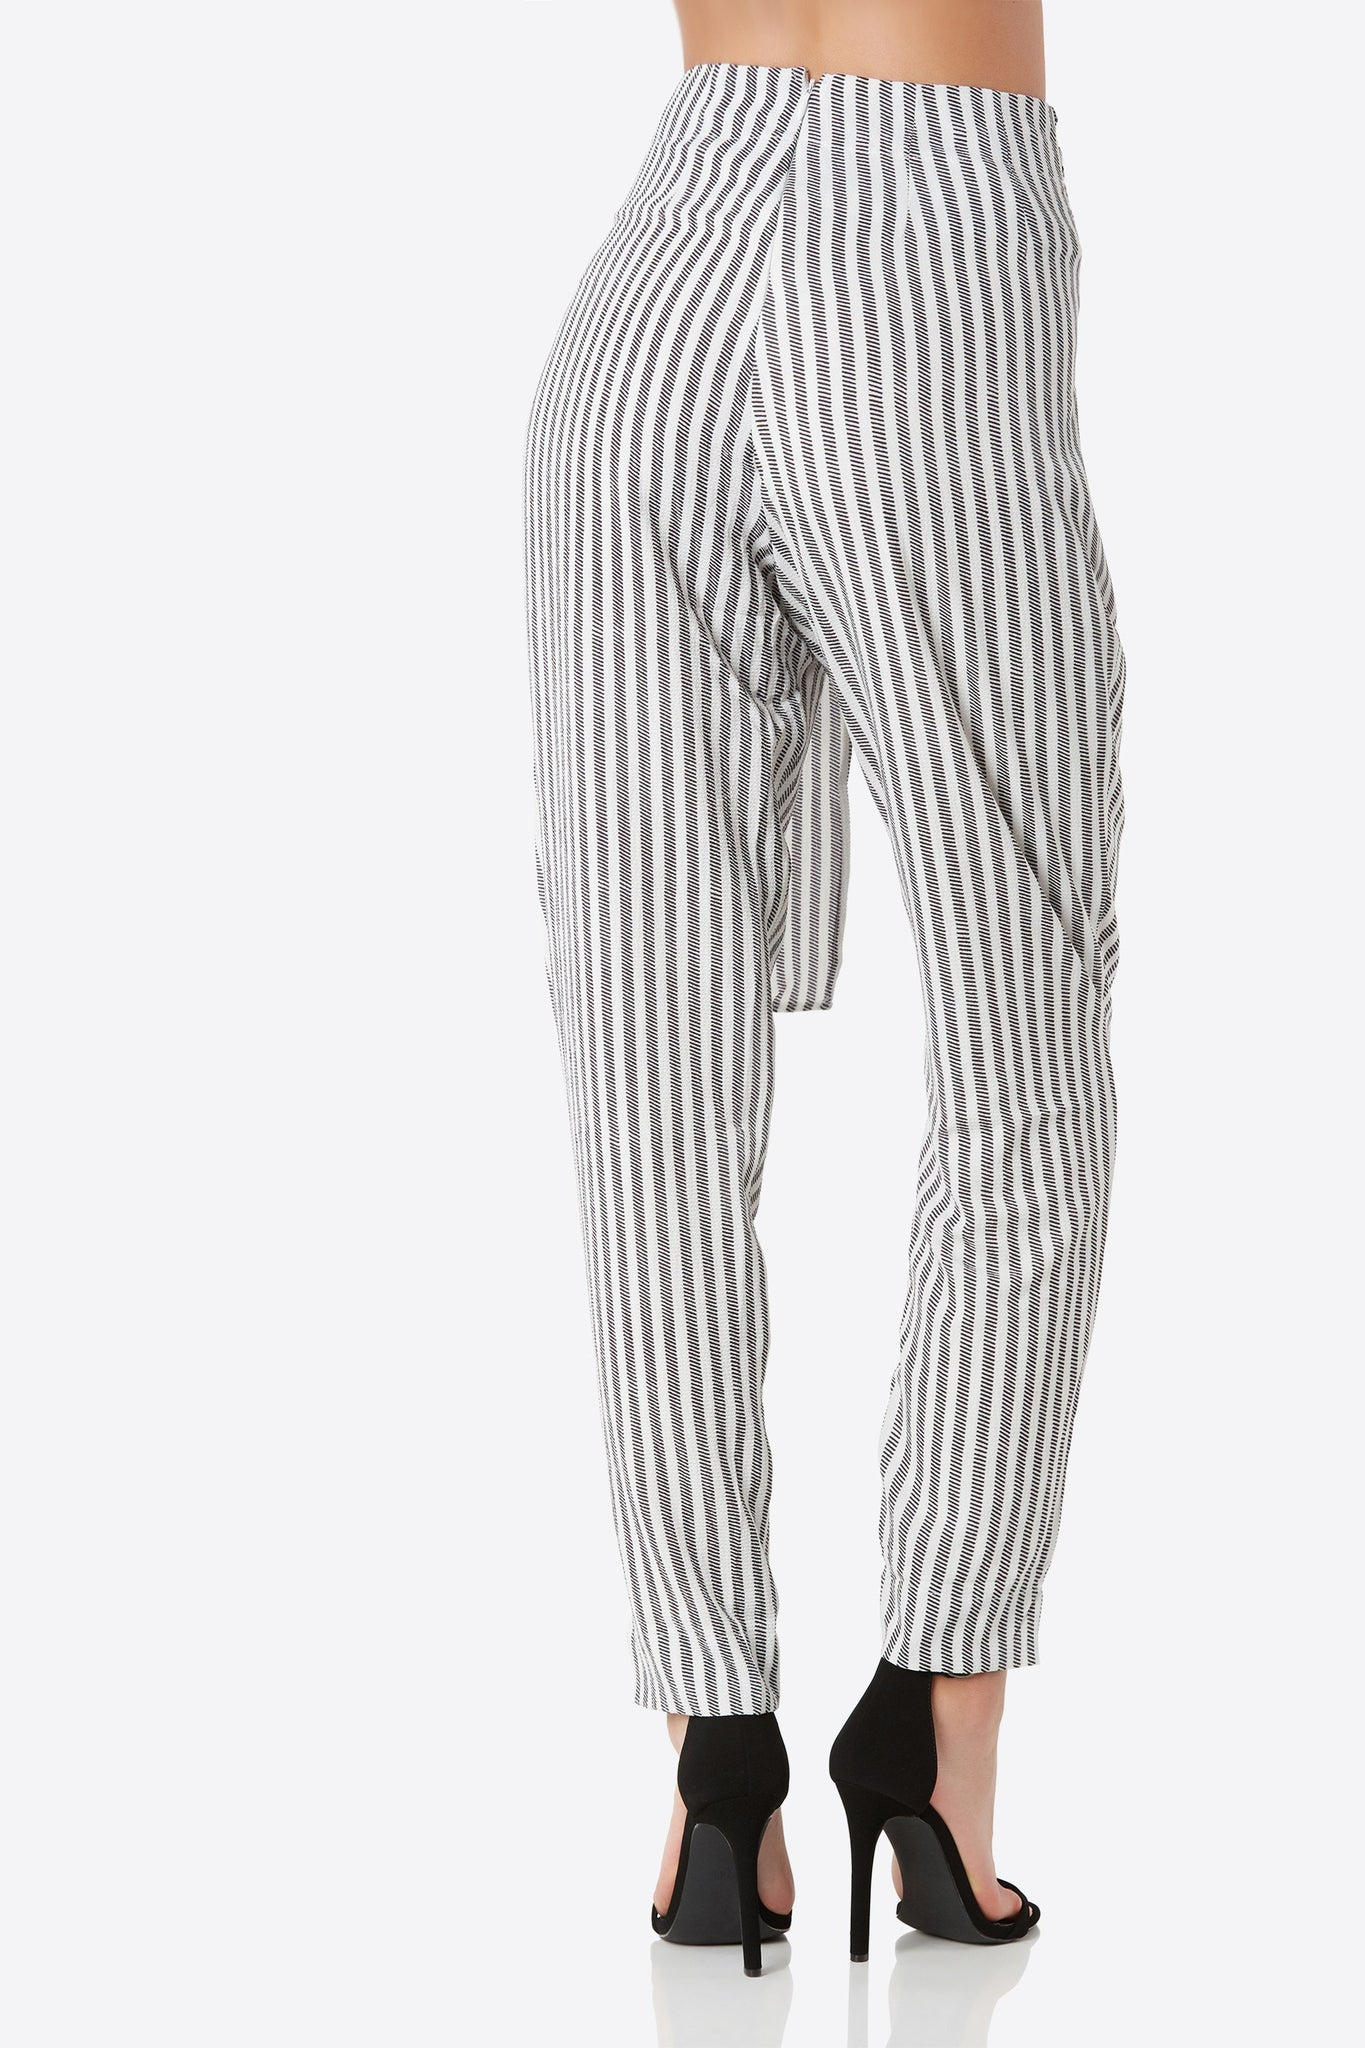 Chic high rise pants with stripe print throughout. Wrap front detailing with back zip closure.